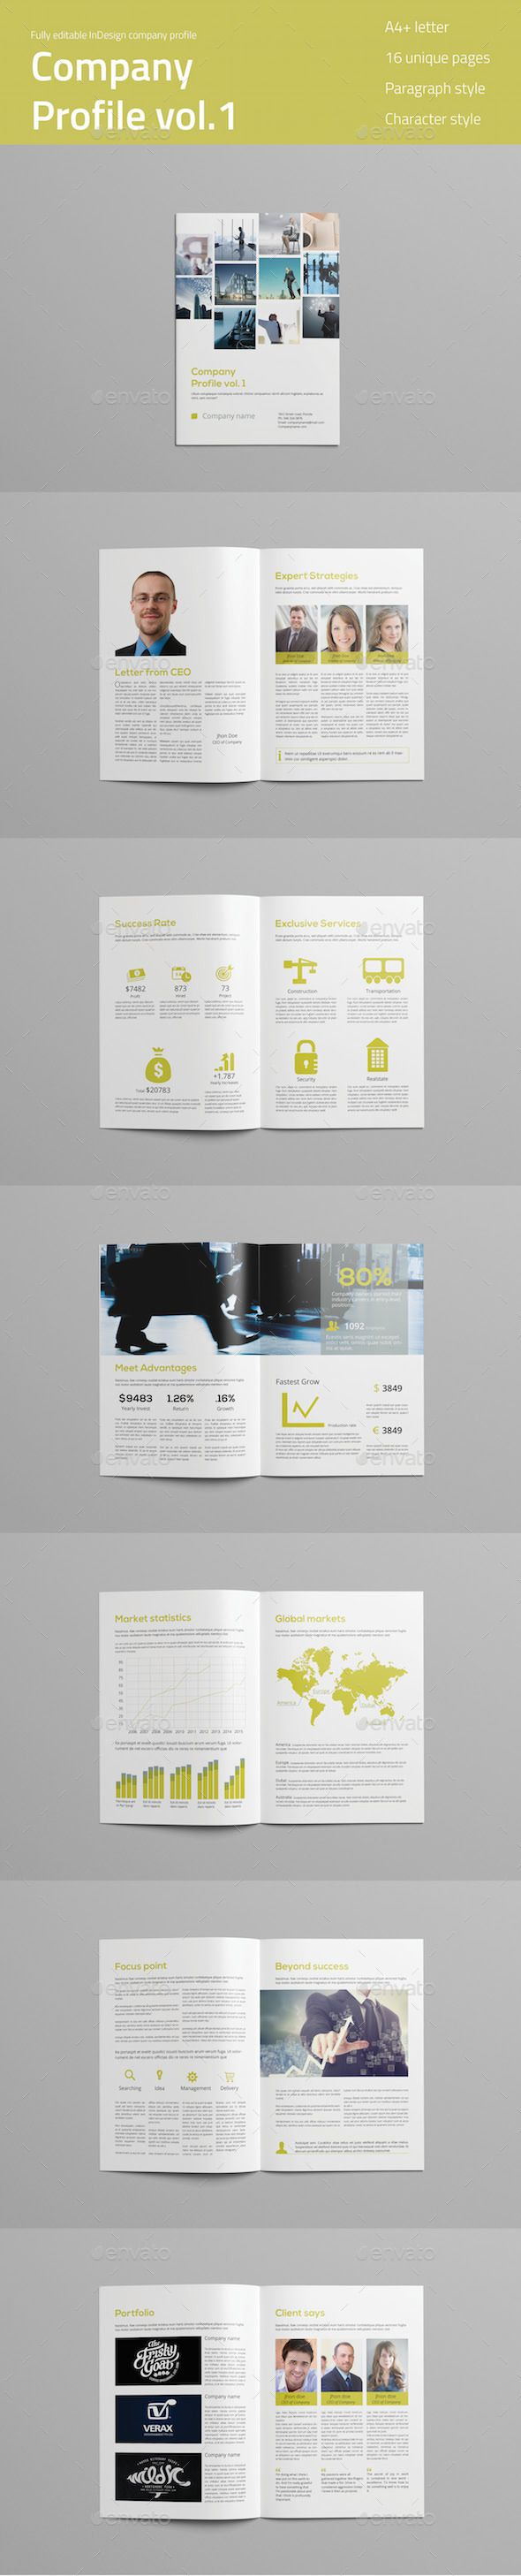 Company profile brochure template brochure design for Company profile brochure template